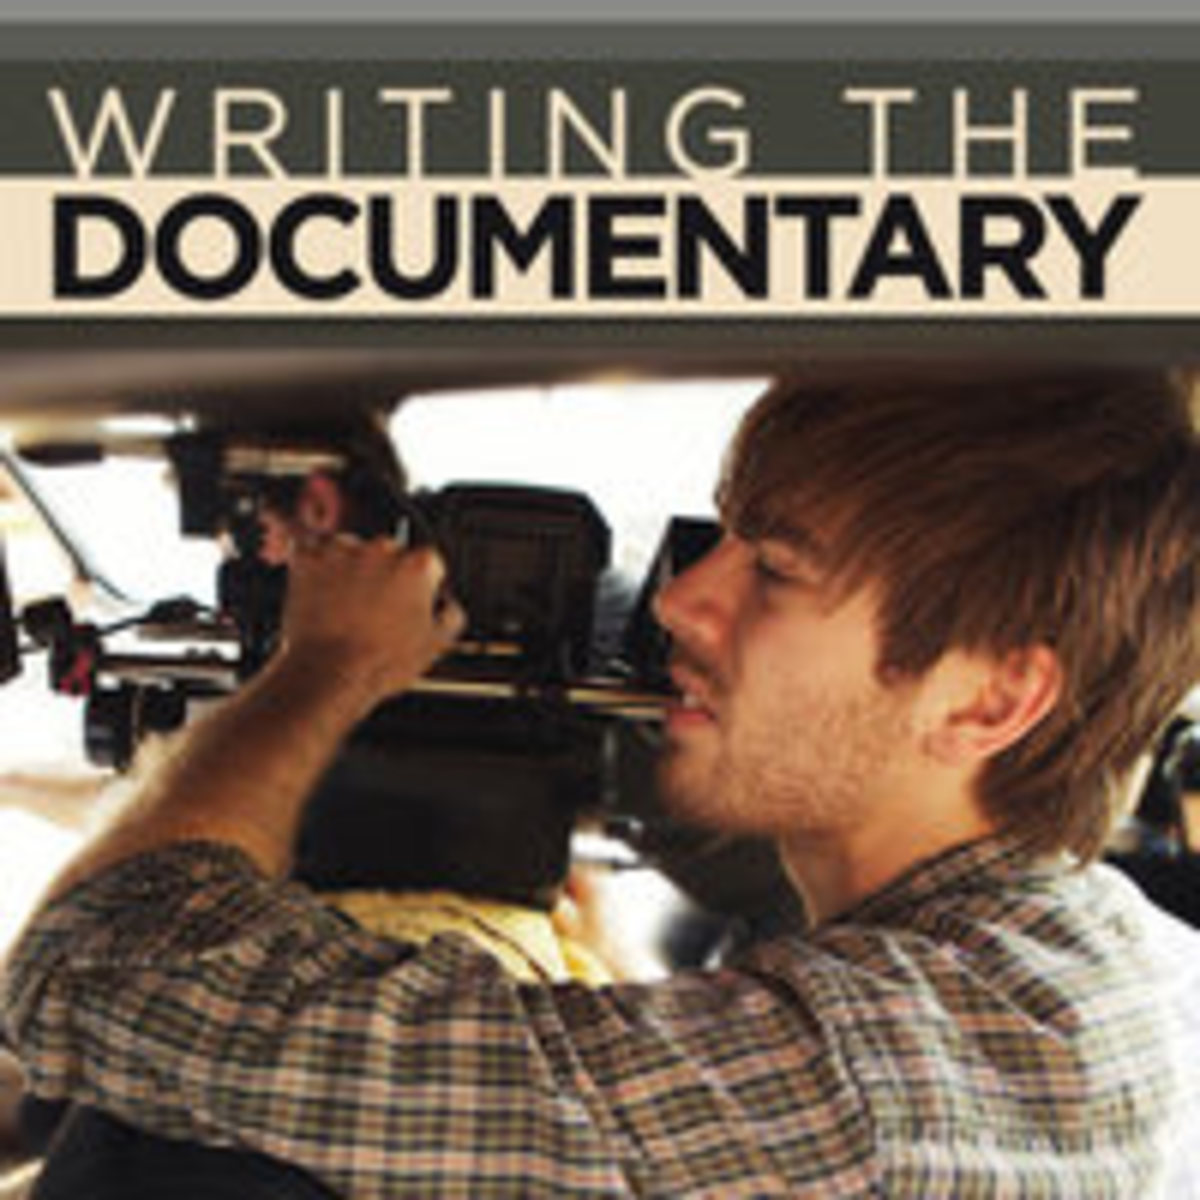 ws_writingdocumentary-500_small